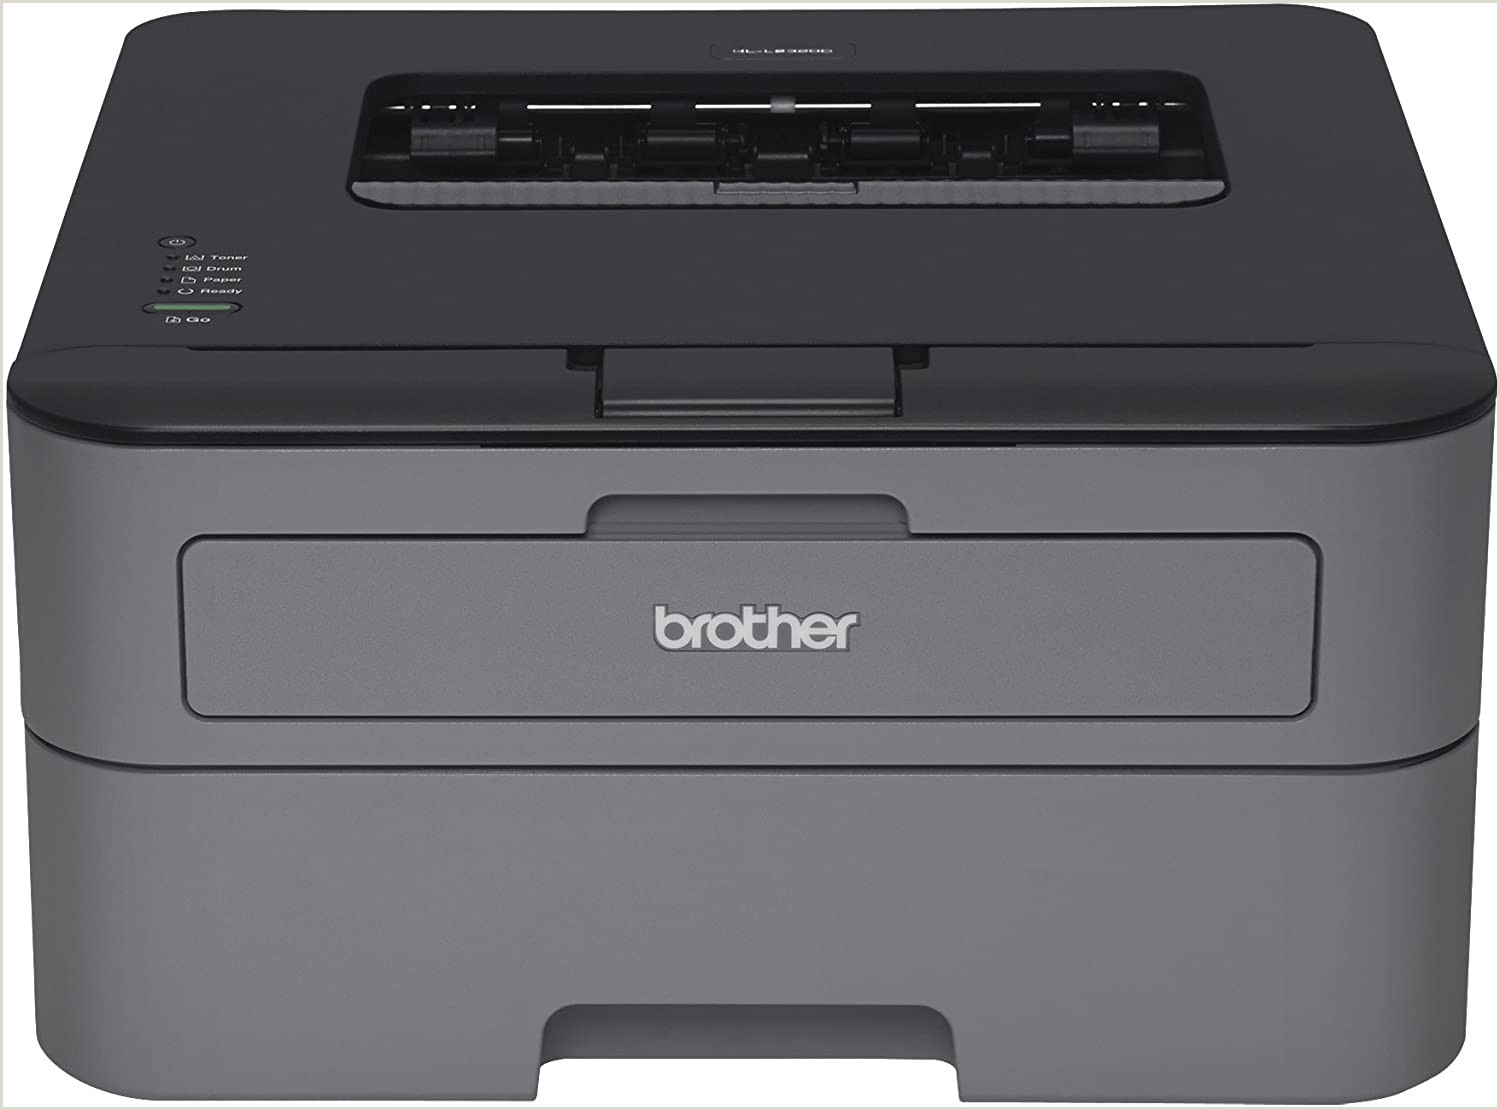 Unique Paper To Print Business Cards Amazon Brother Hl L2300d Monochrome Laser Printer With